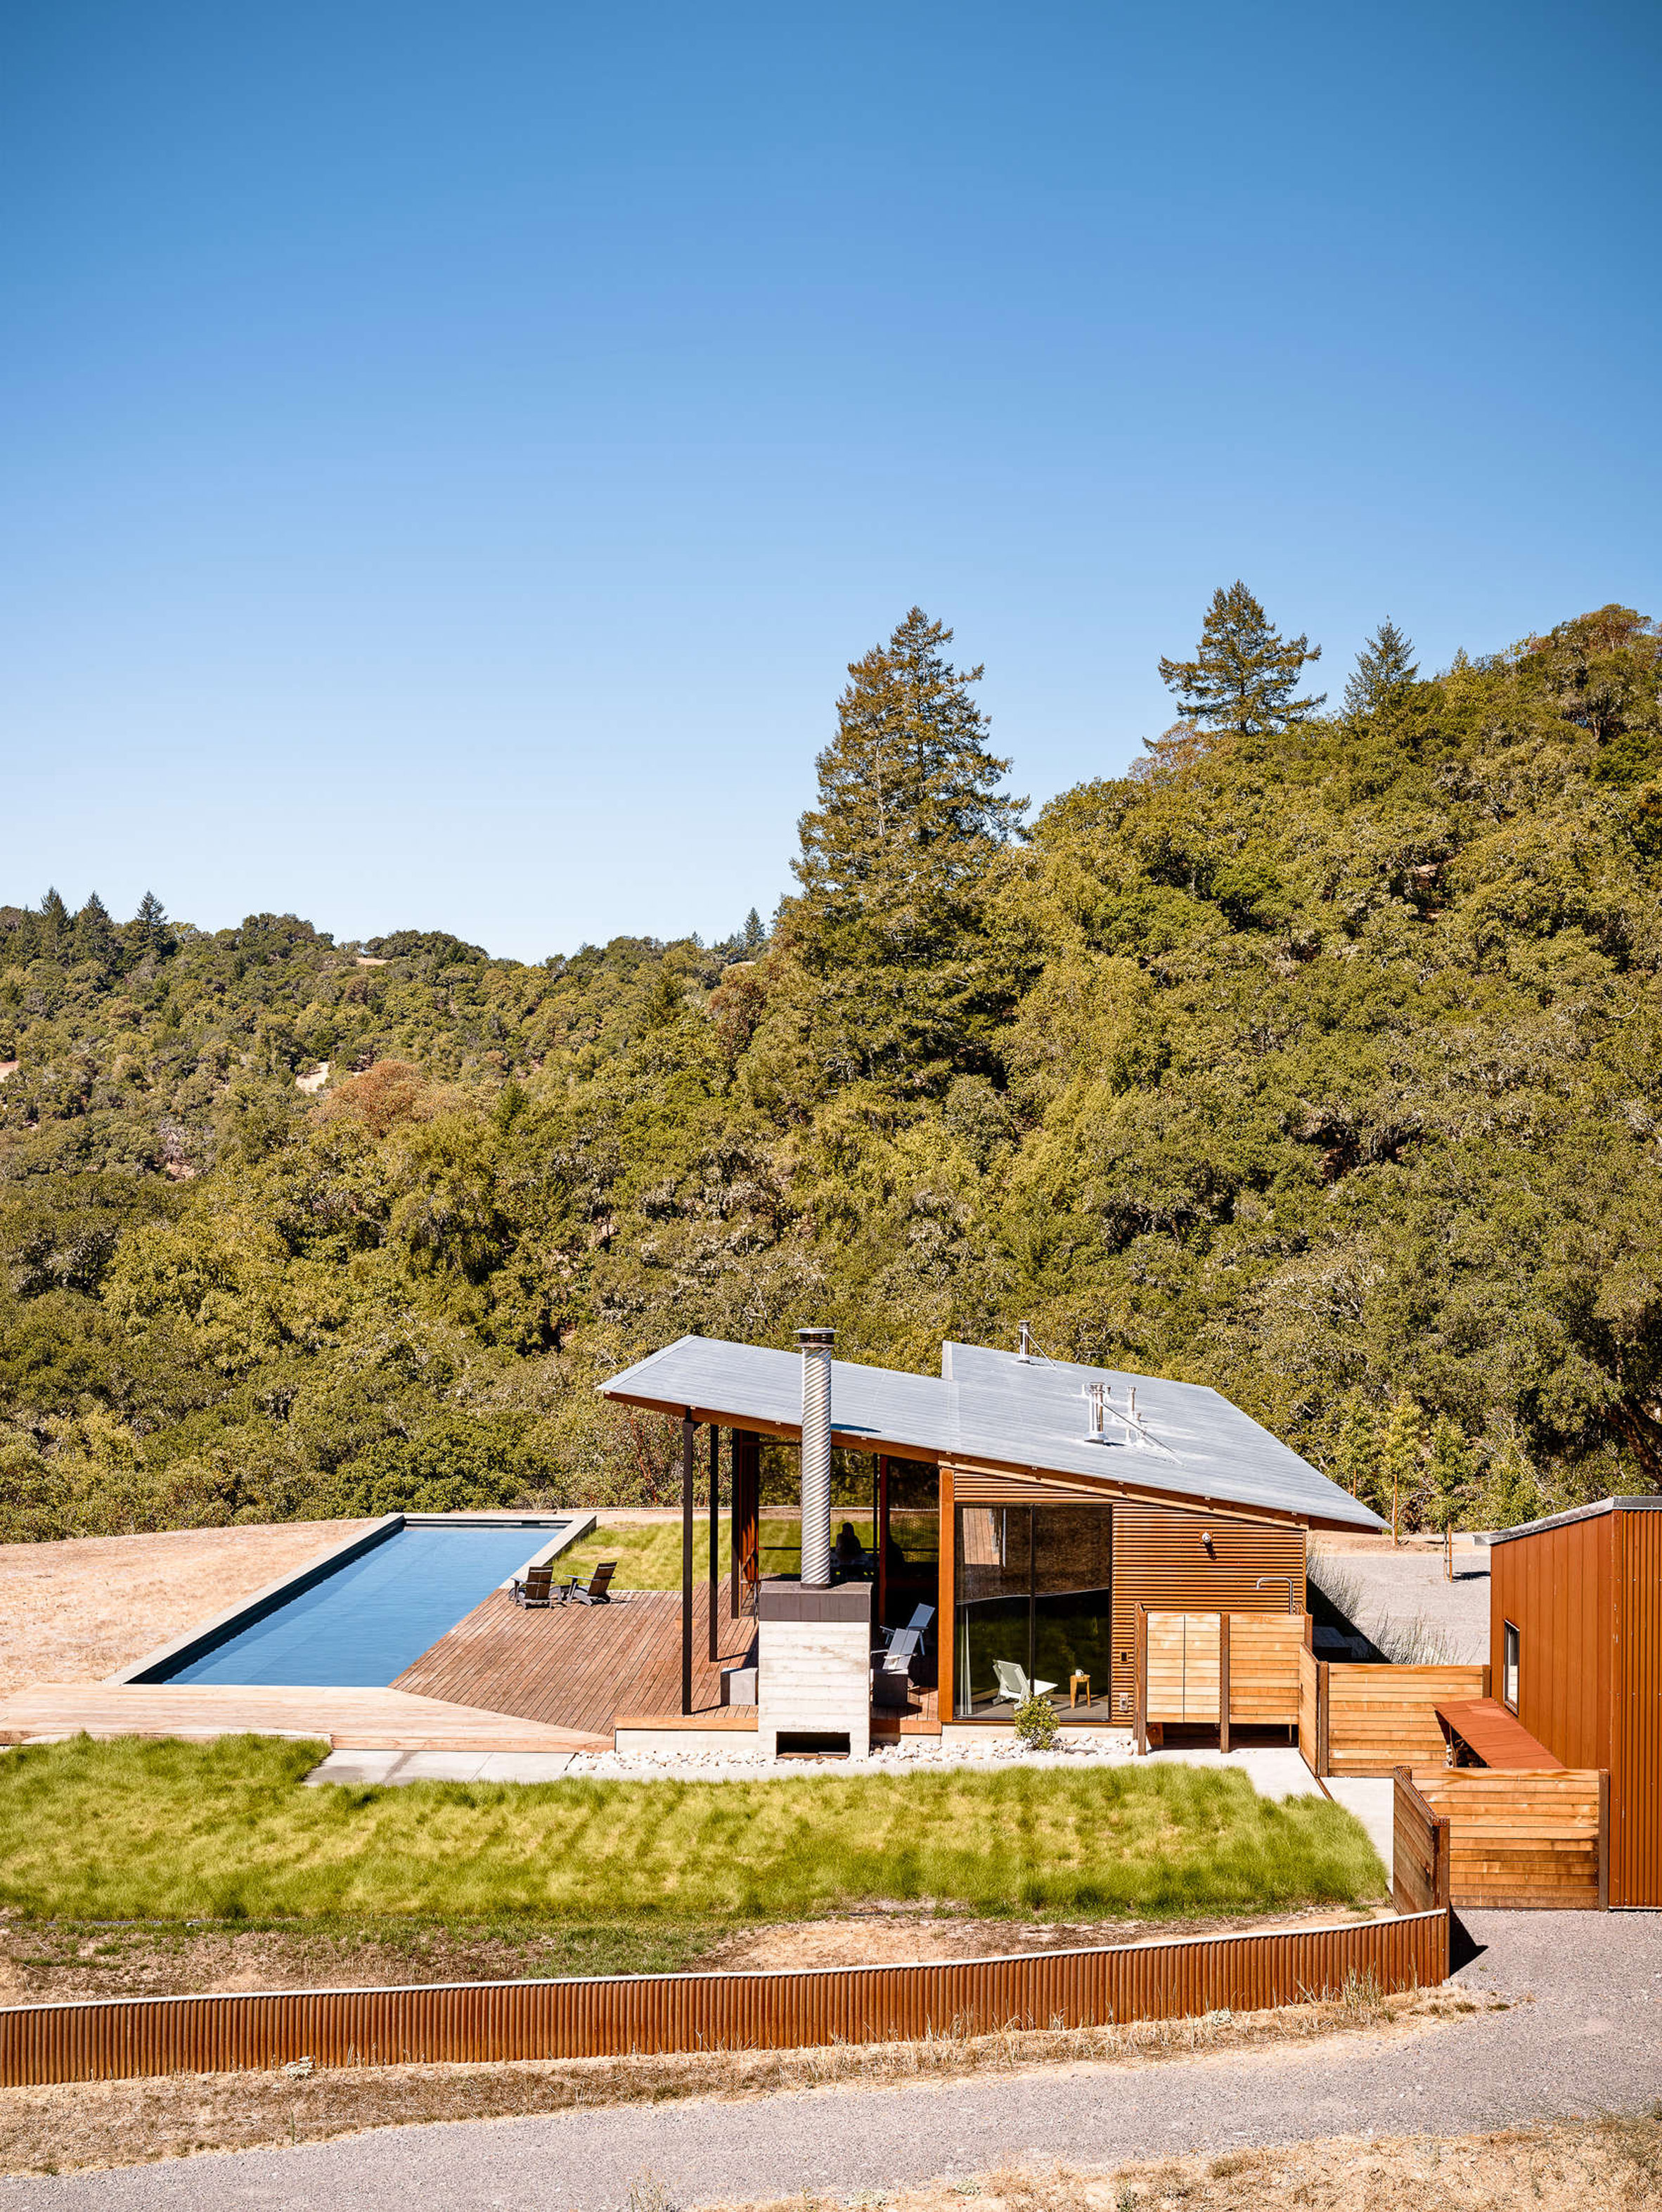 Malcolm Davis creates off-grid retreat in California wine valley